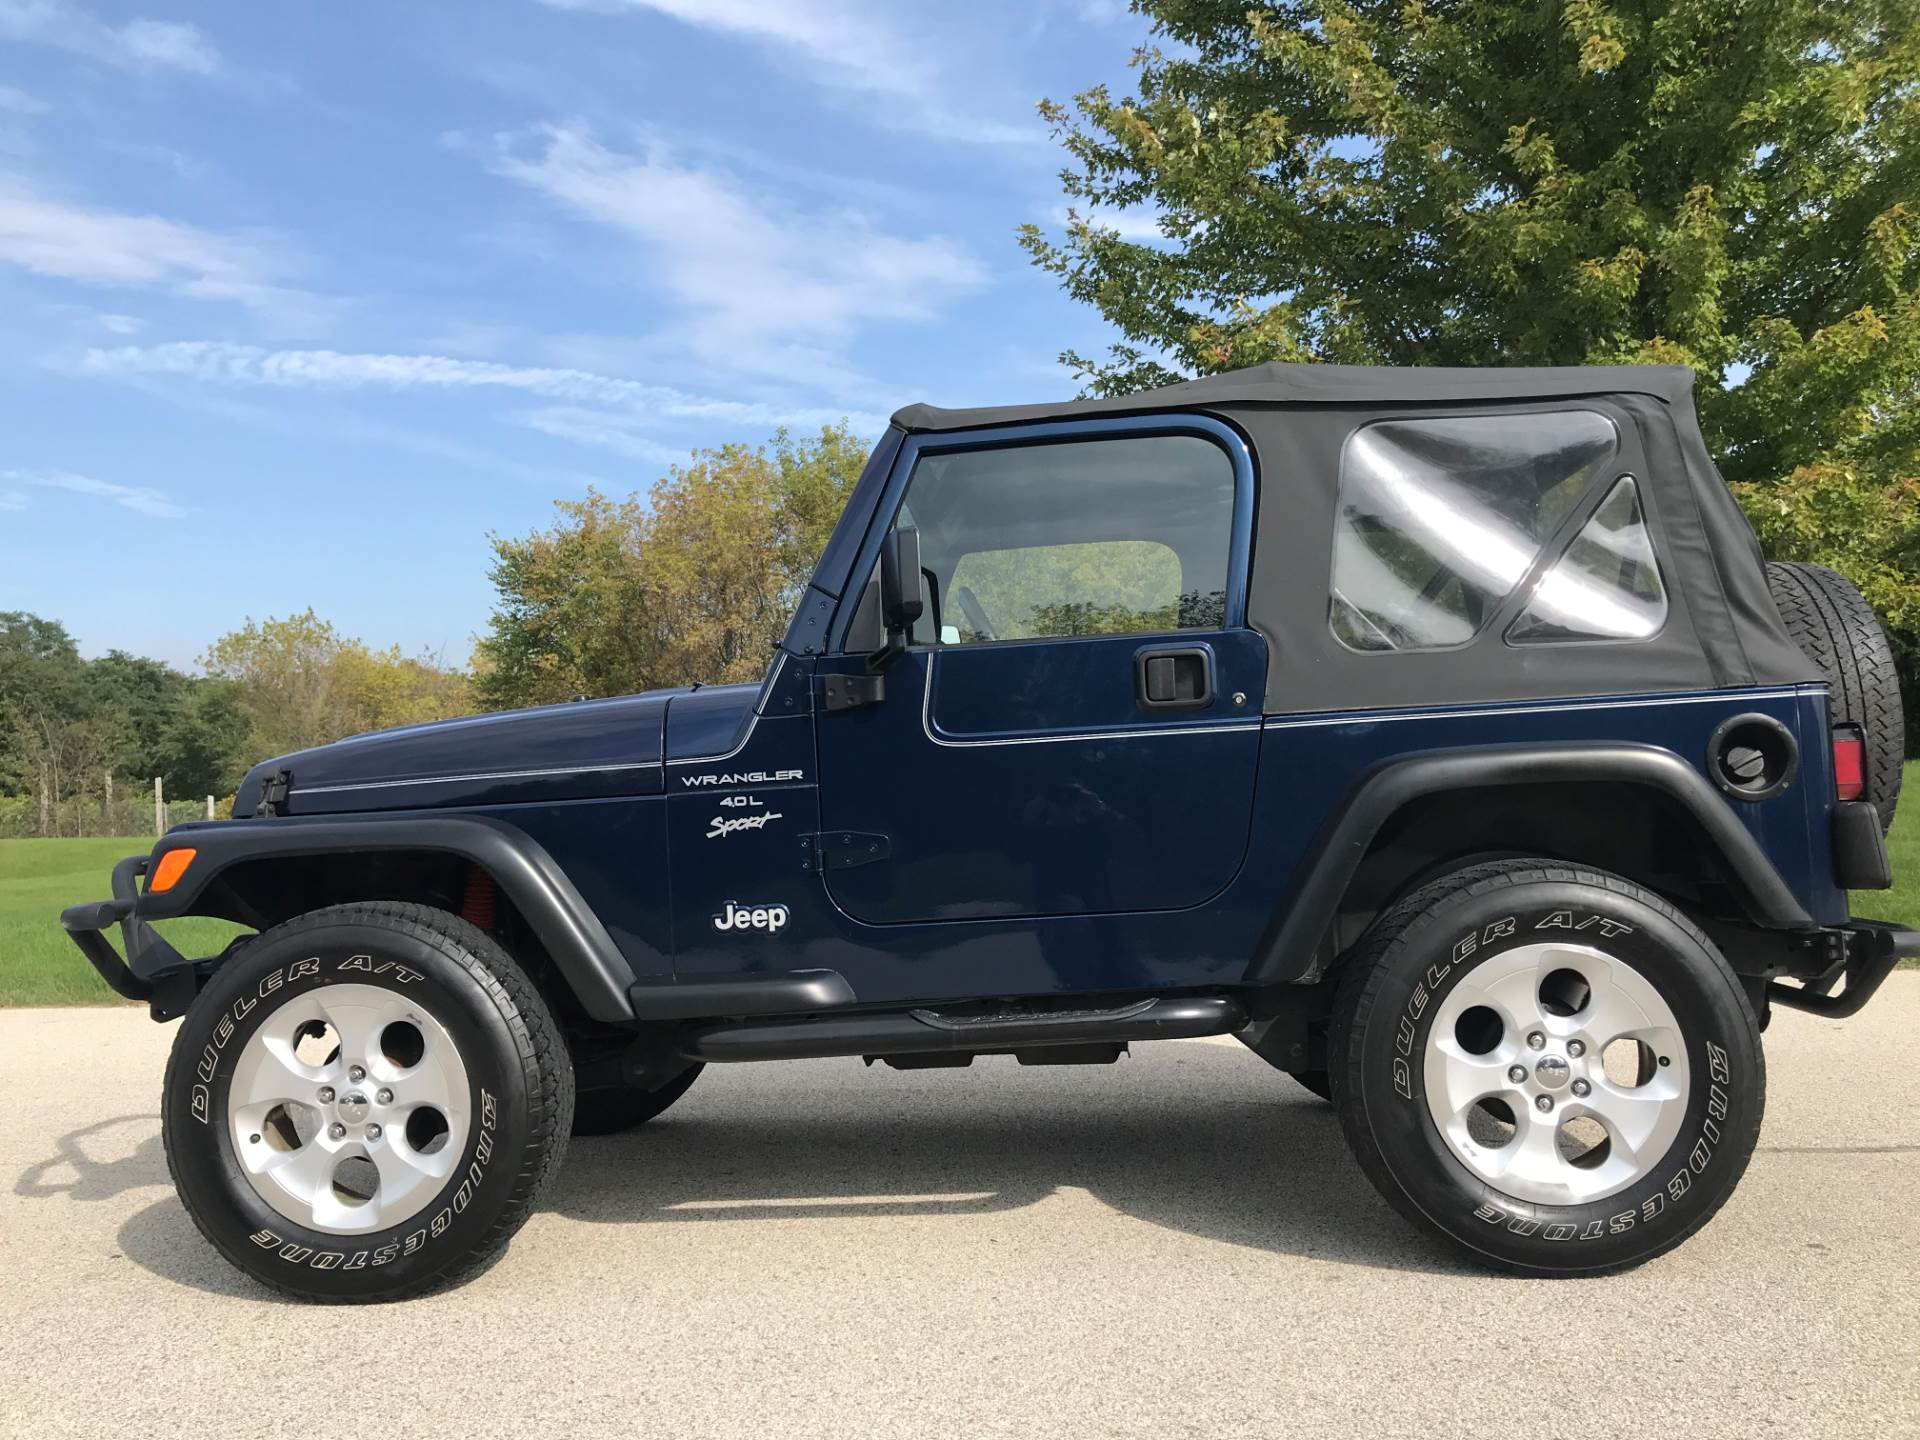 2000 Jeep Wrangler Sport 2dr 4WD SUV in Big Bend, Wisconsin - Photo 43